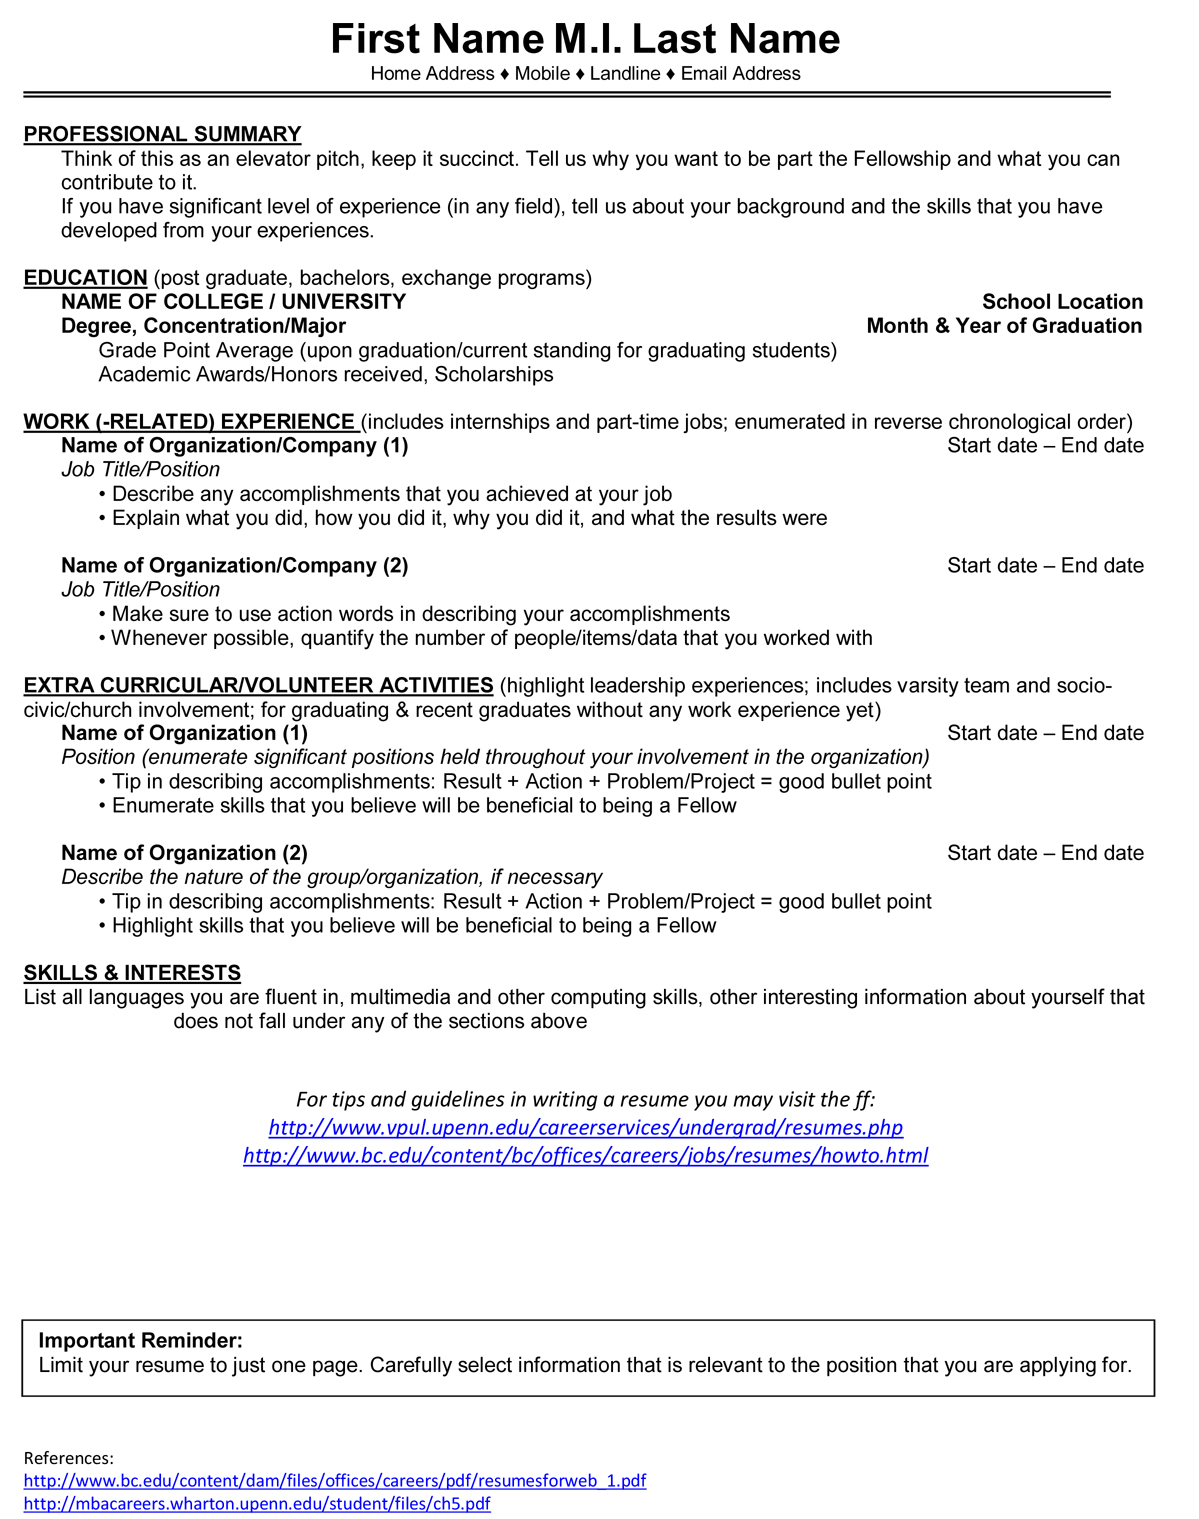 Resume For Kitchen Manager Sample One Service